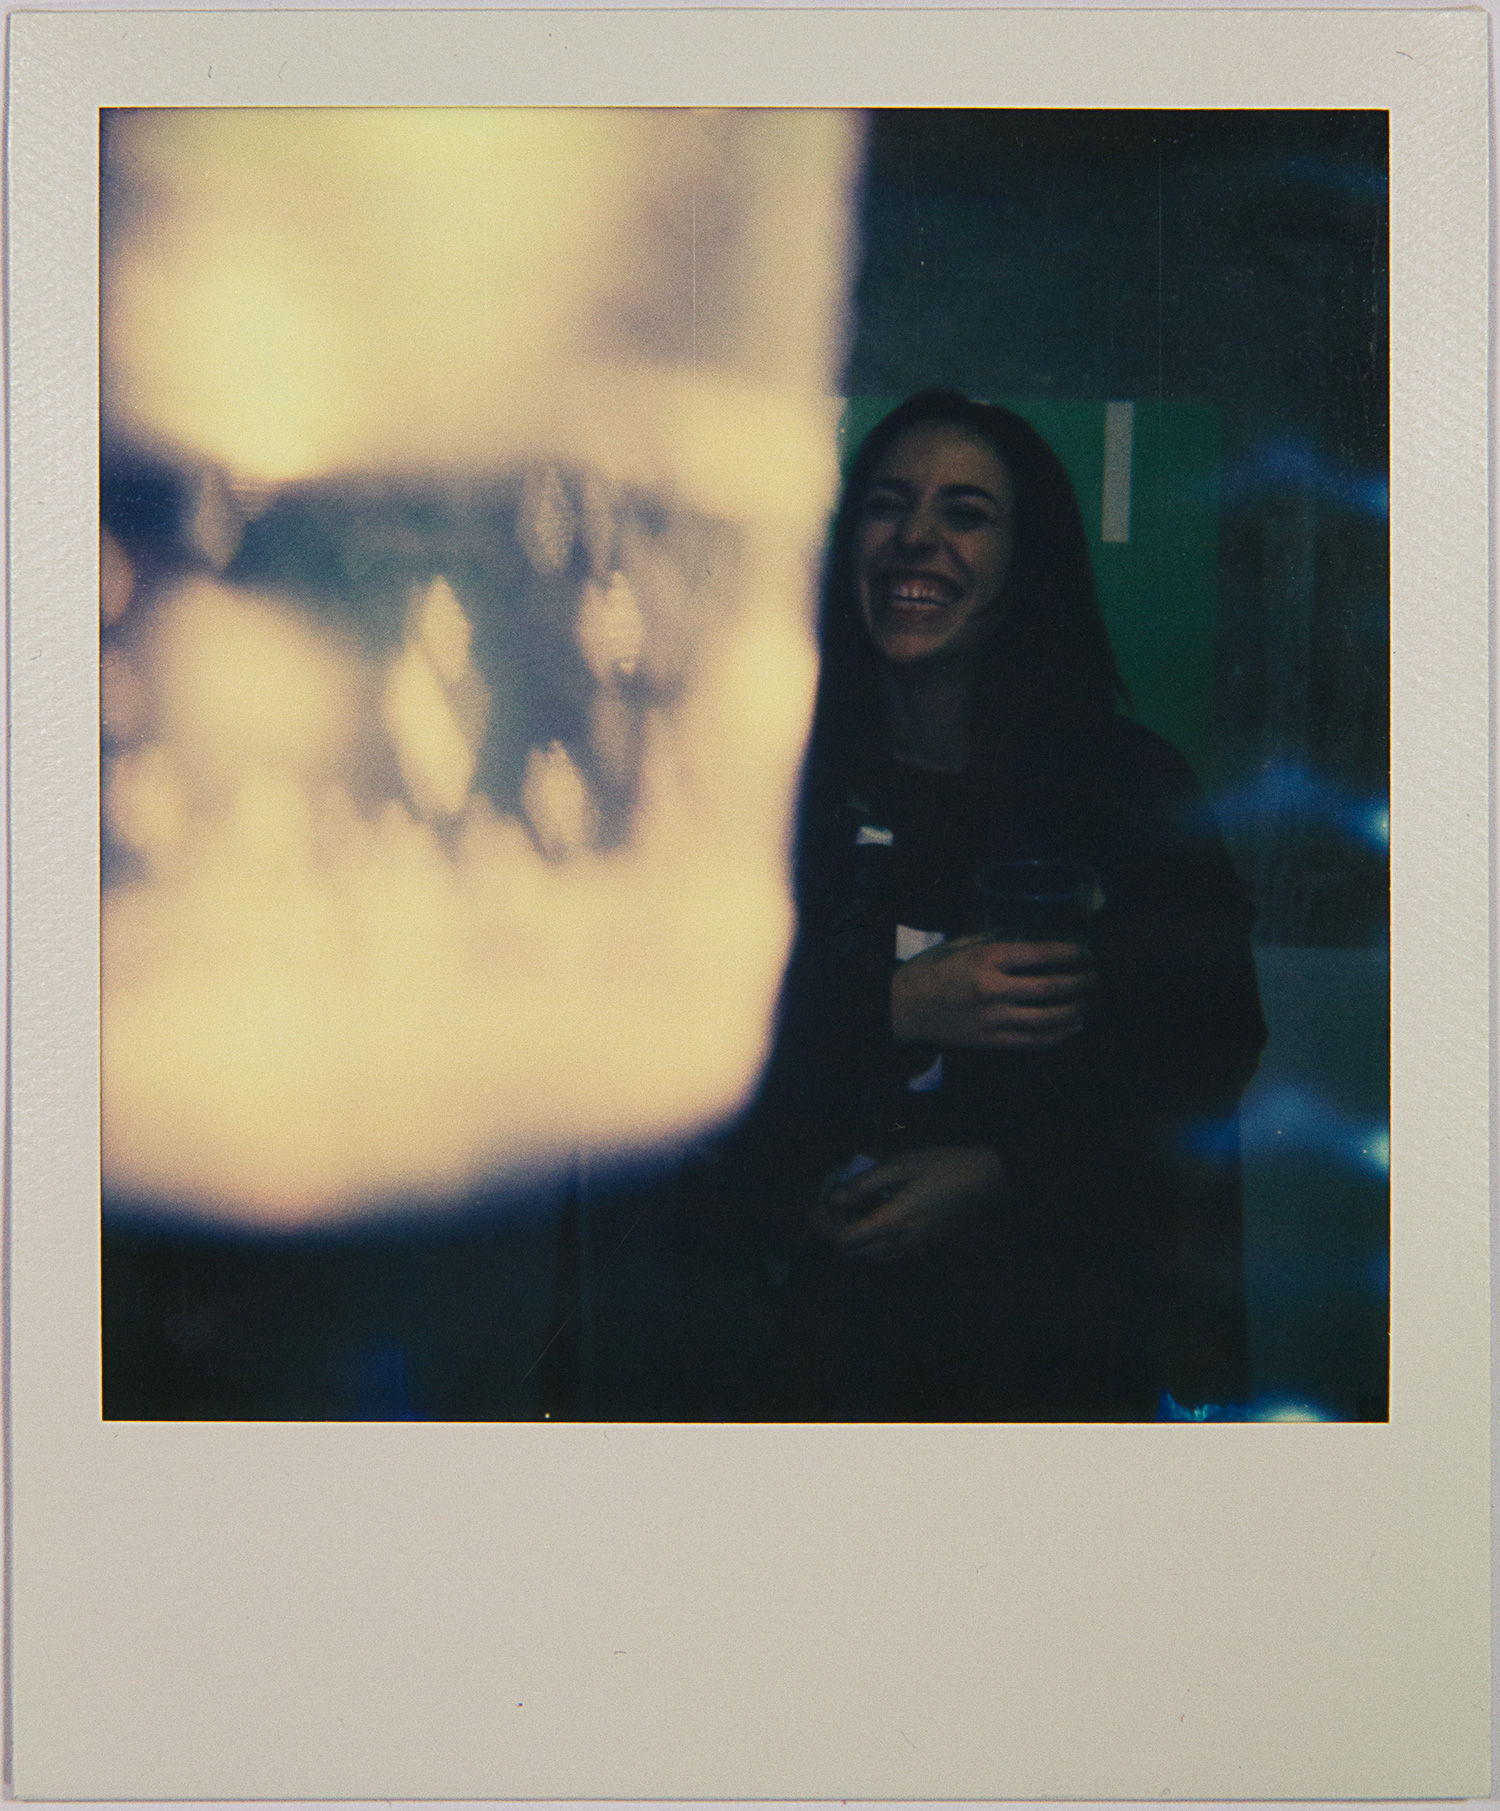 PYLOT ISSUE 04 LAUNCH PARTY IMPOSSIBLE PROJECT 11